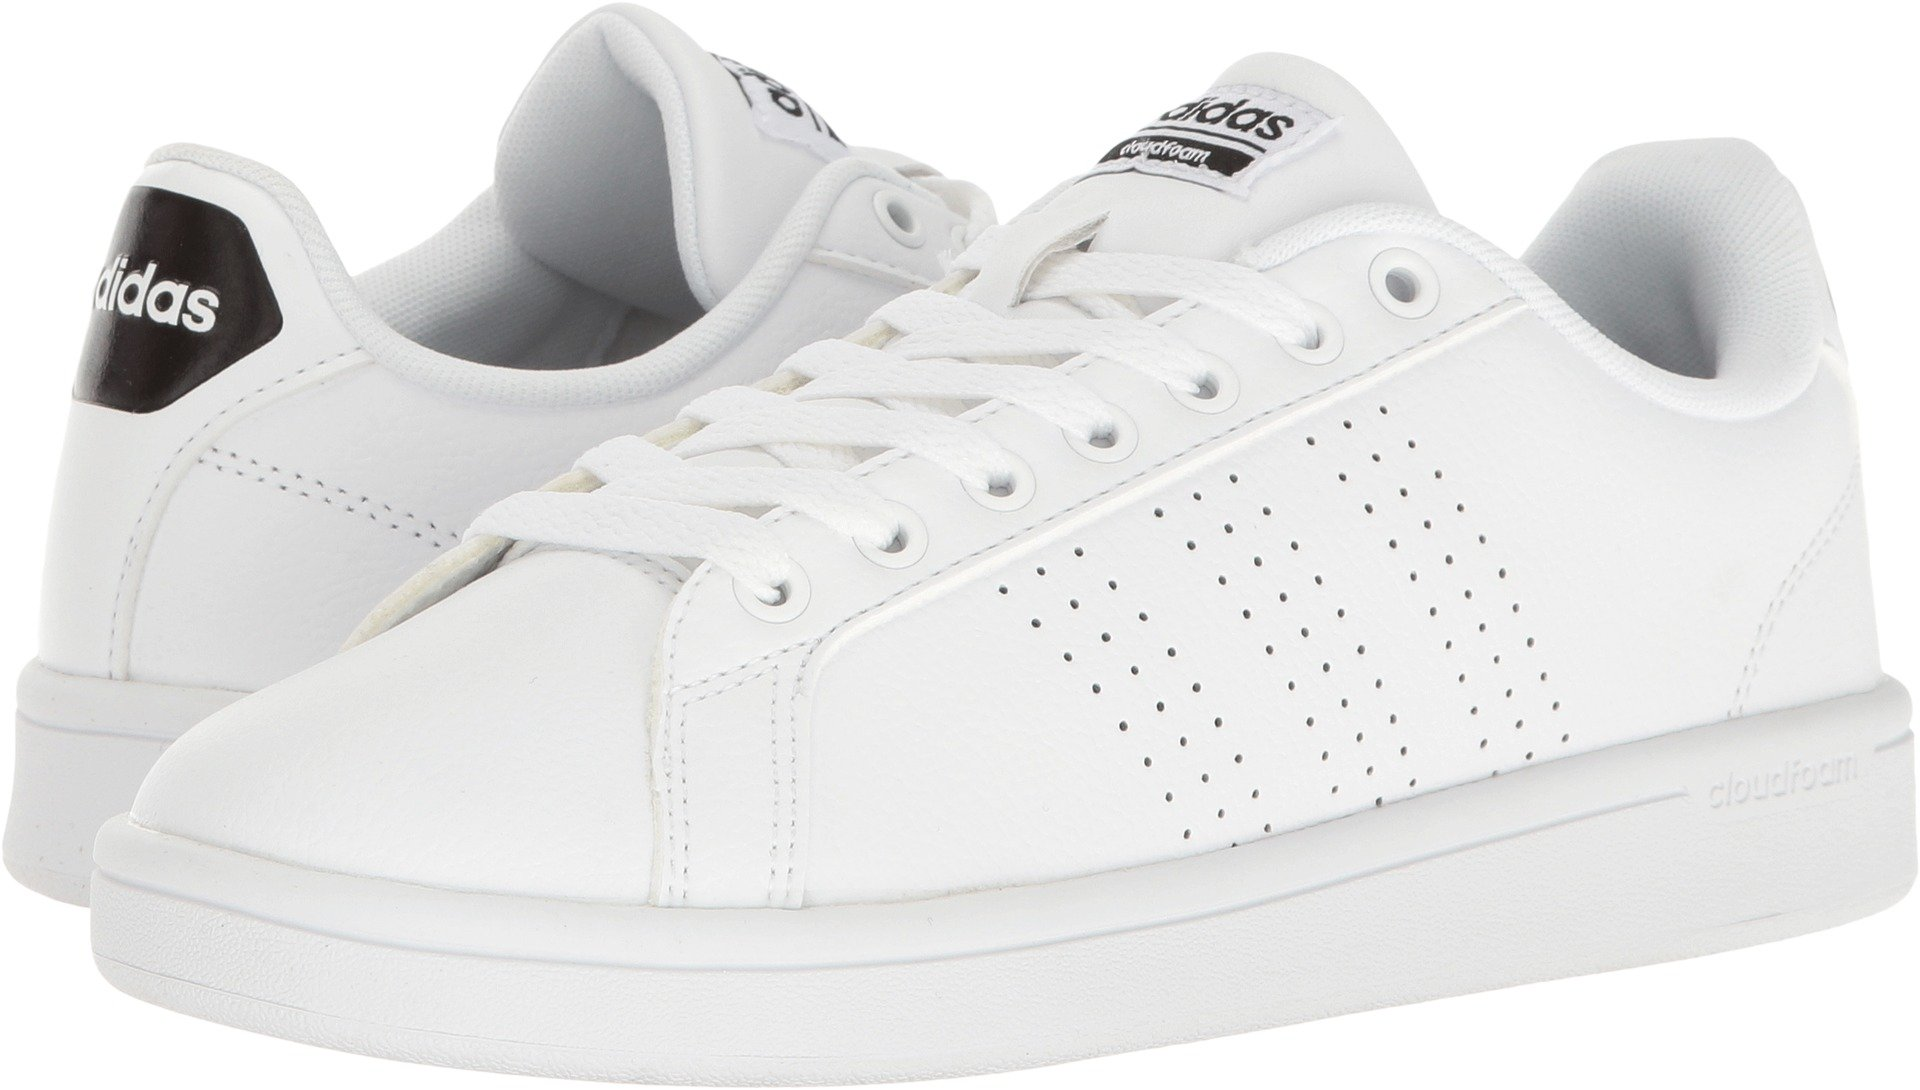 adidas Women's Shoes Cloudfoam Advantage Clean Sneakers, White/White/Black, (5 M US)